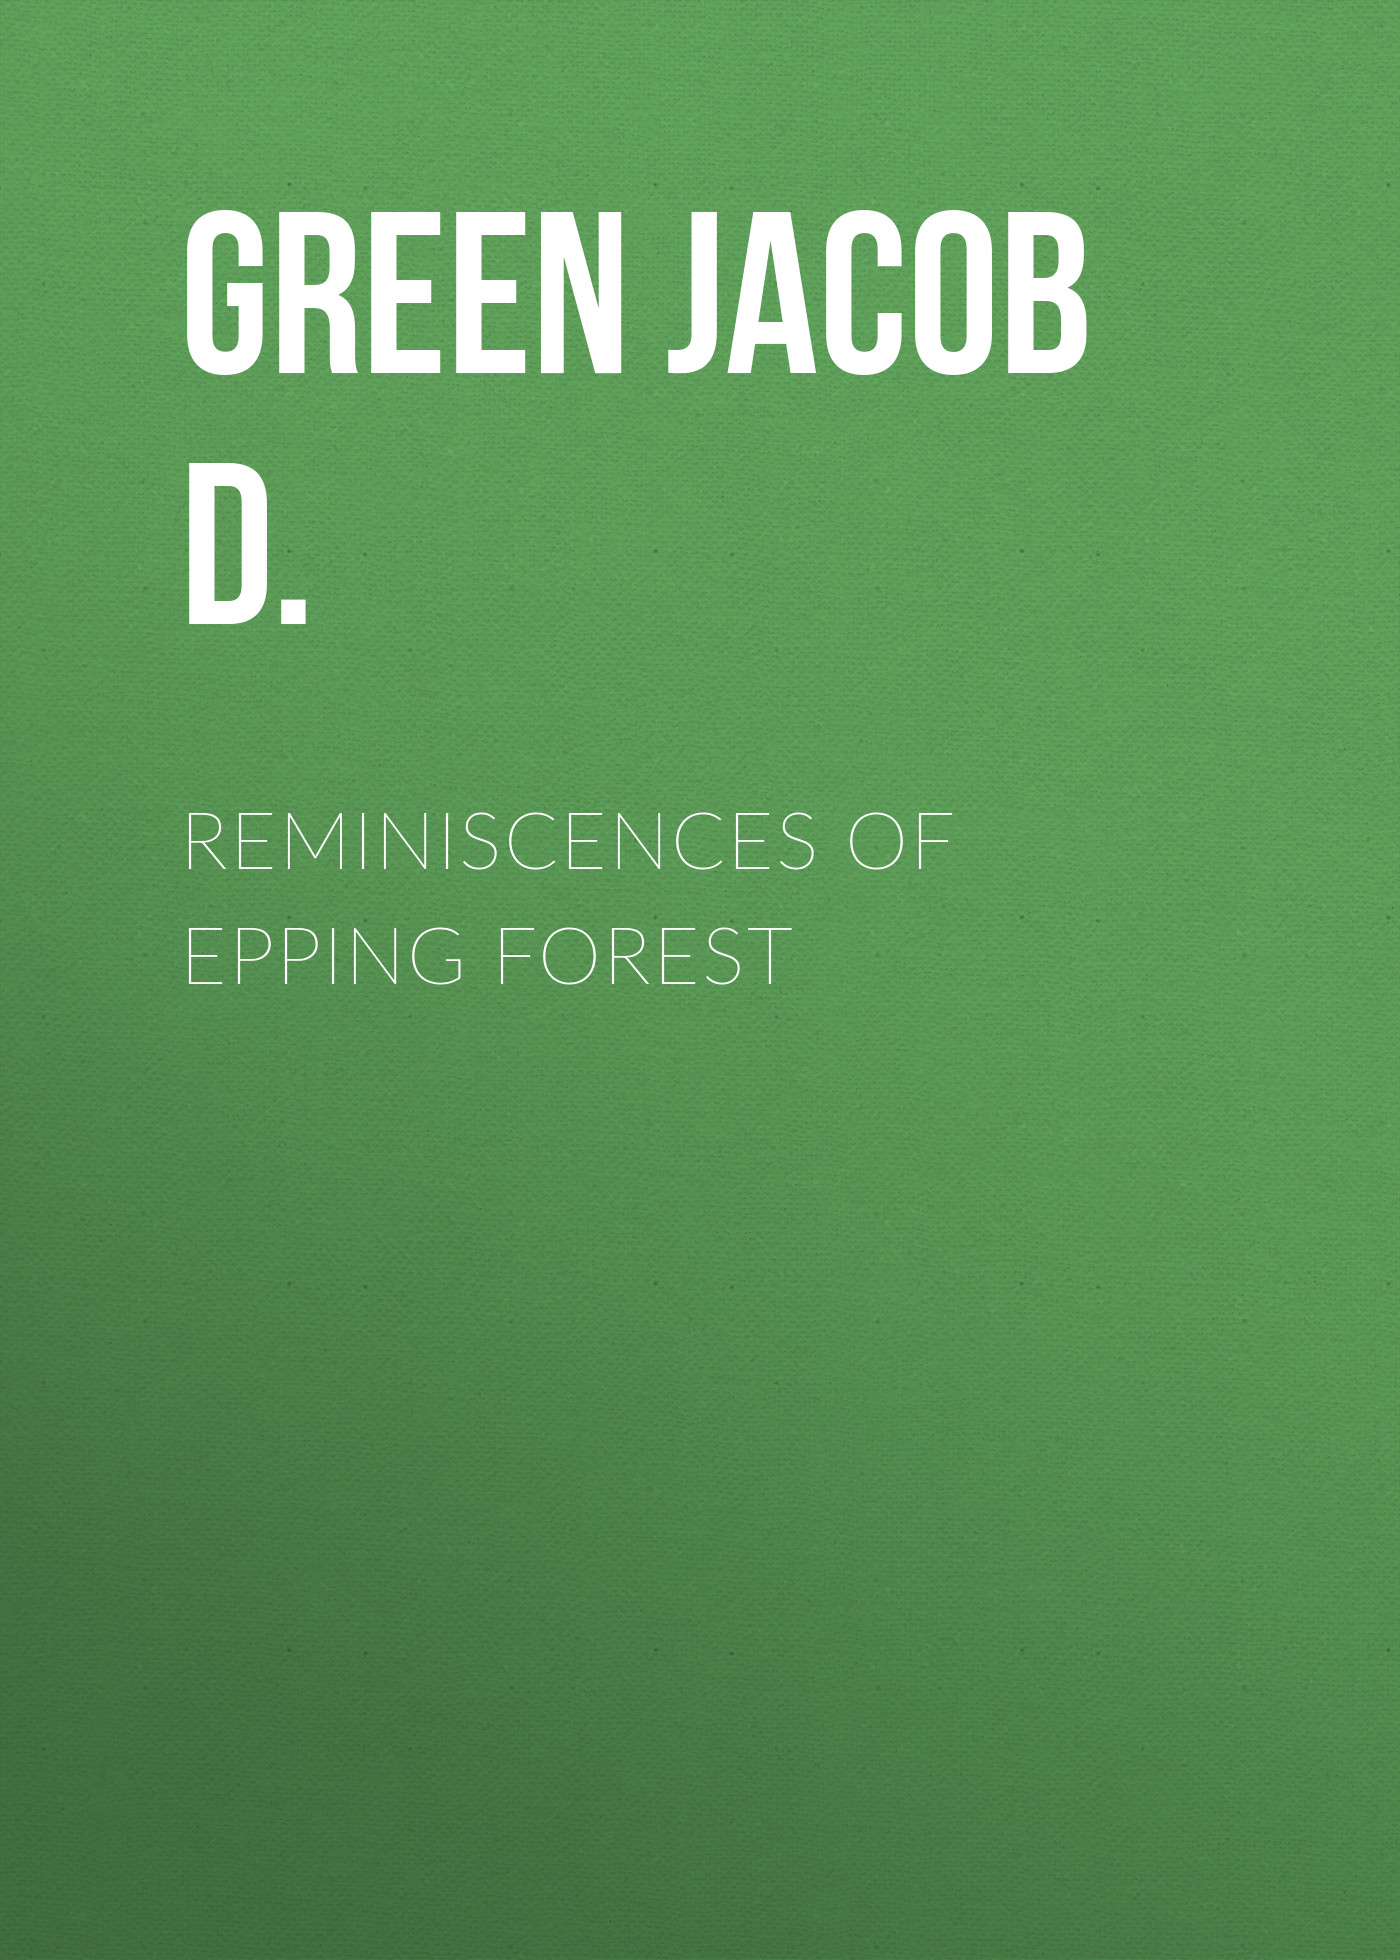 Green Jacob D. Reminiscences of Epping Forest beibehang 3d wallpaper modern minimalist tv backdrop fresh green tree forest living room bedroom mural wallpaper for walls 3 d